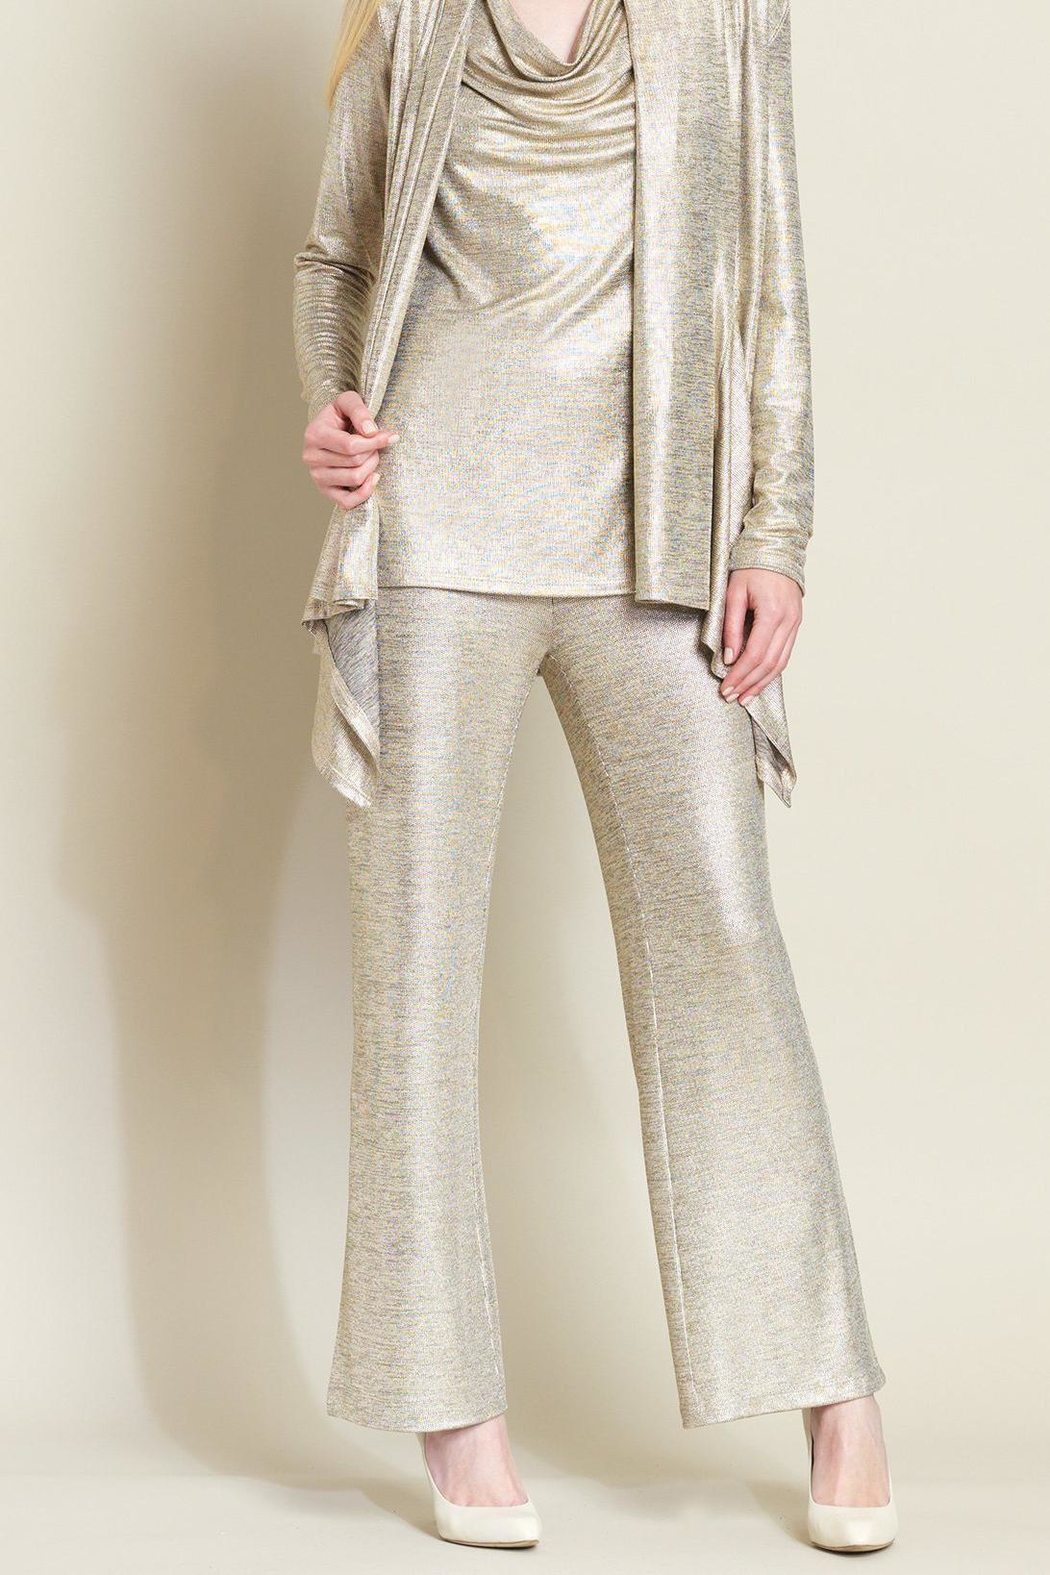 Clara Sunwoo Metallic Side-Slit Pant - Main Image